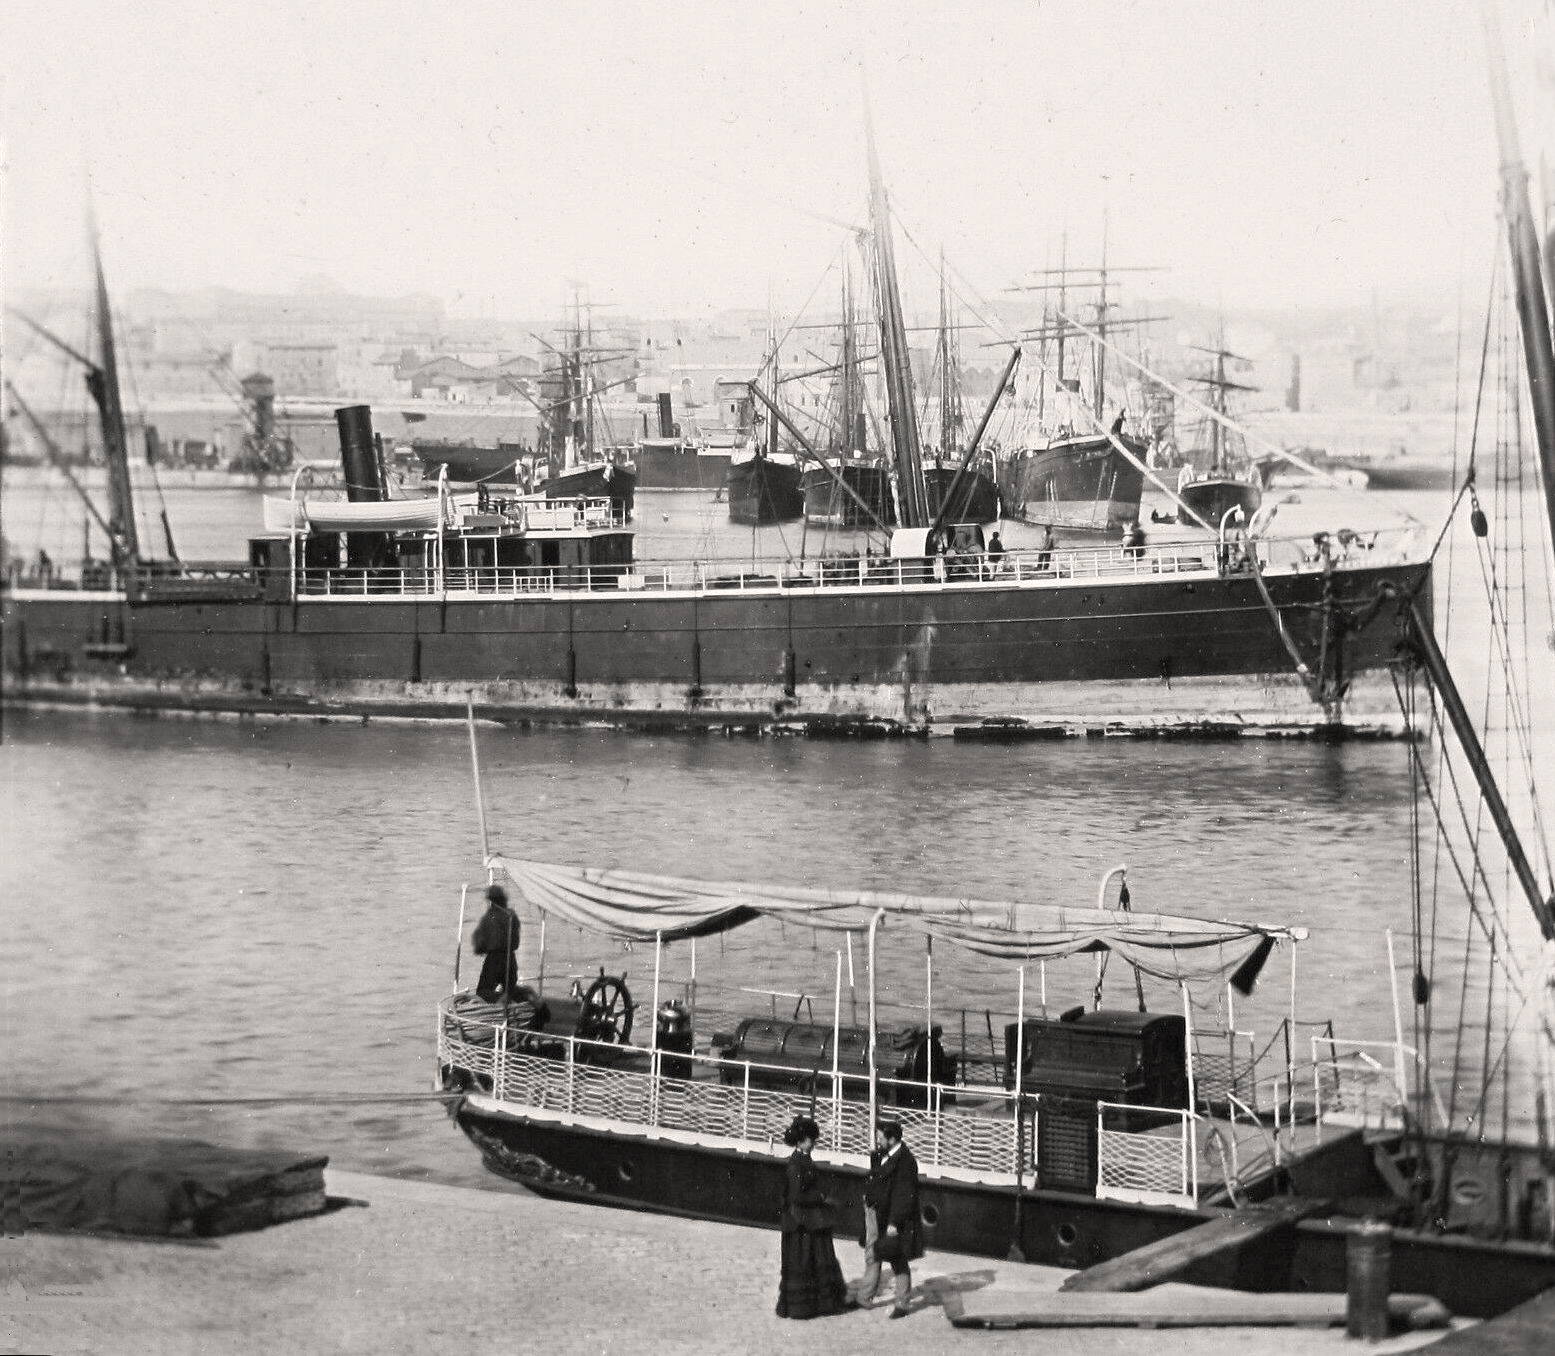 transpress nz: ships in London, England, late 19th century